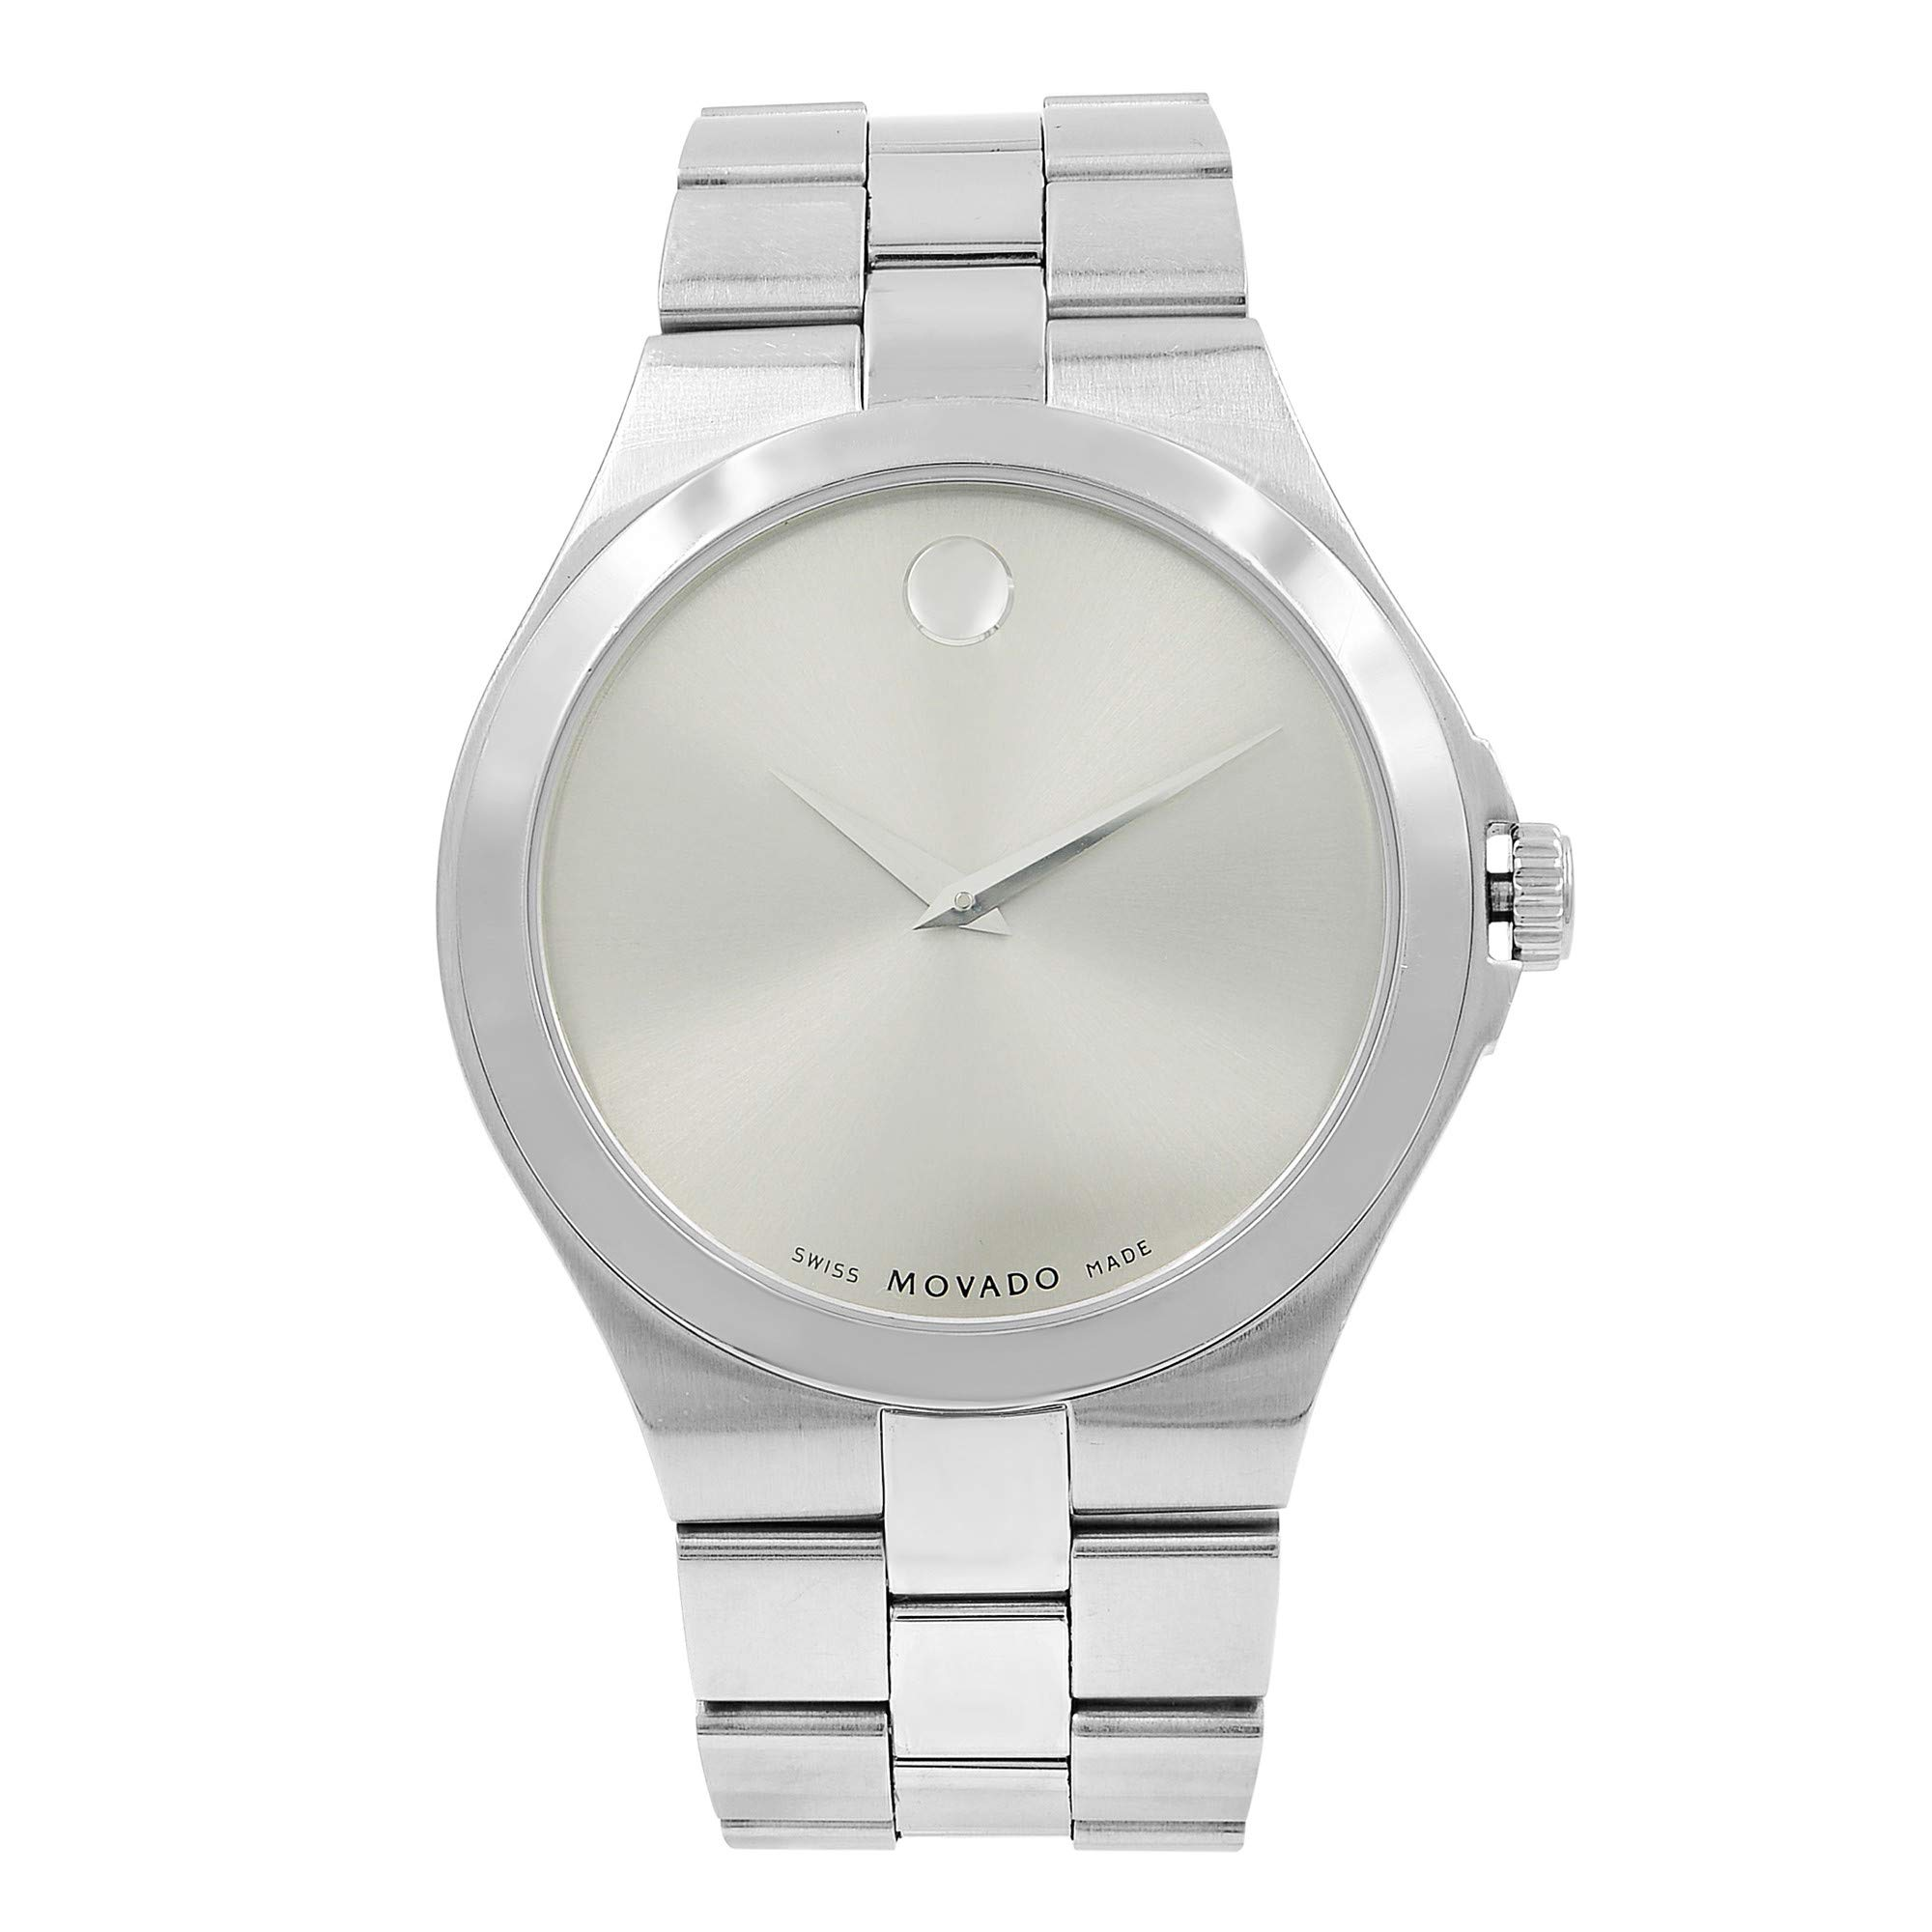 Movado Serio Quartz Male Watch 0606556 (Certified Pre-Owned) by Movado (Image #1)